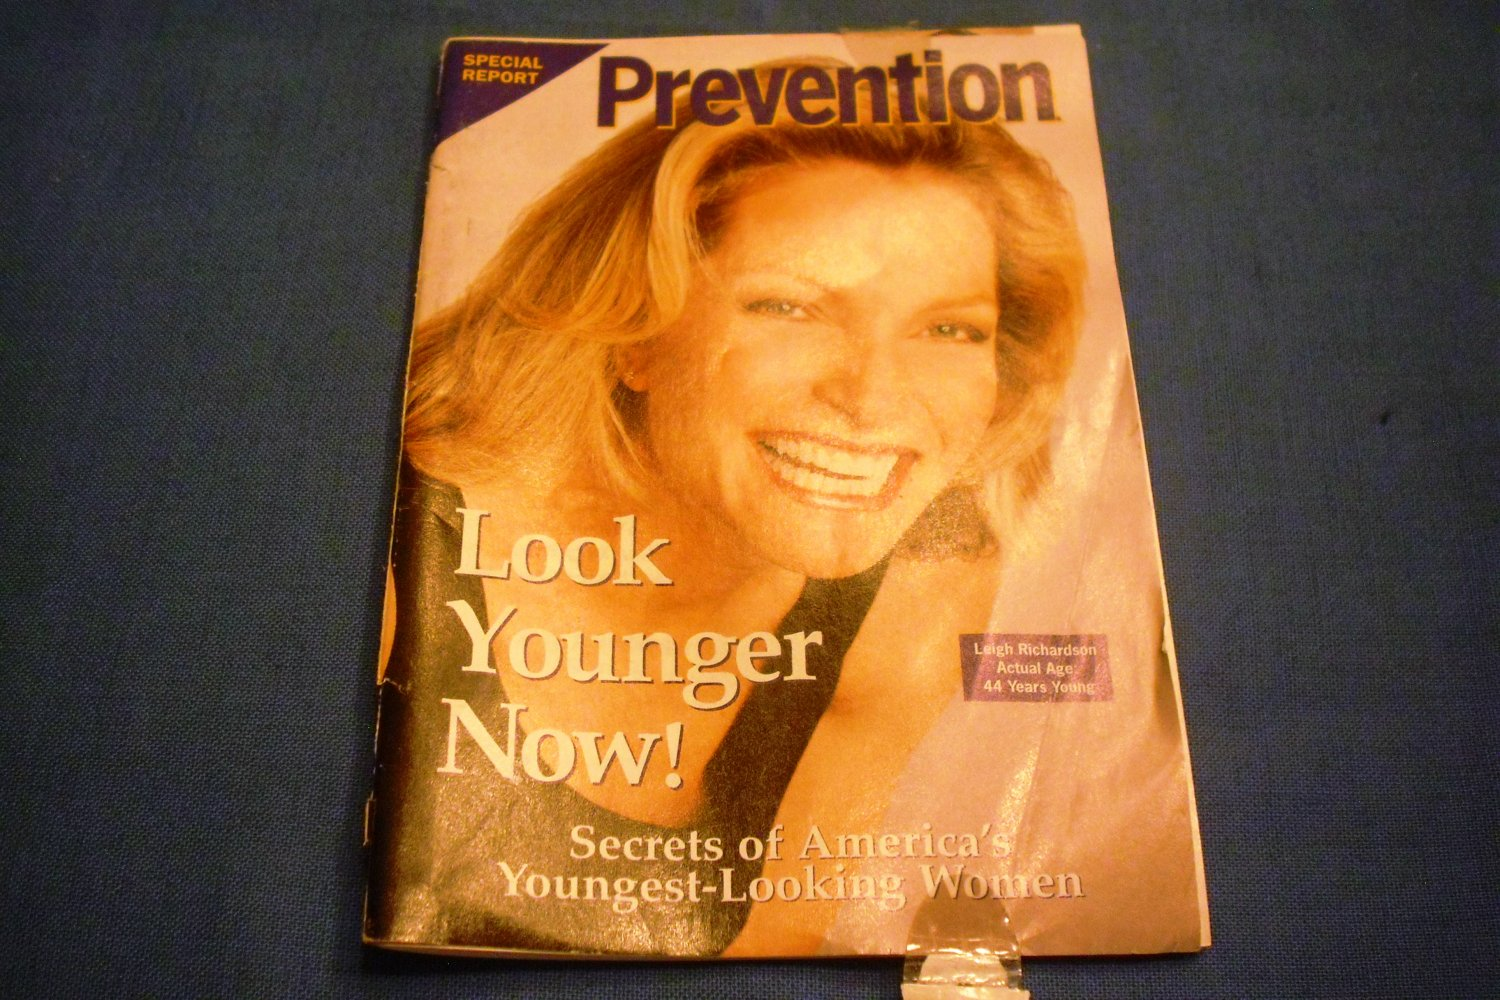 Prevention Magazine Special Report - Look Younger Now!